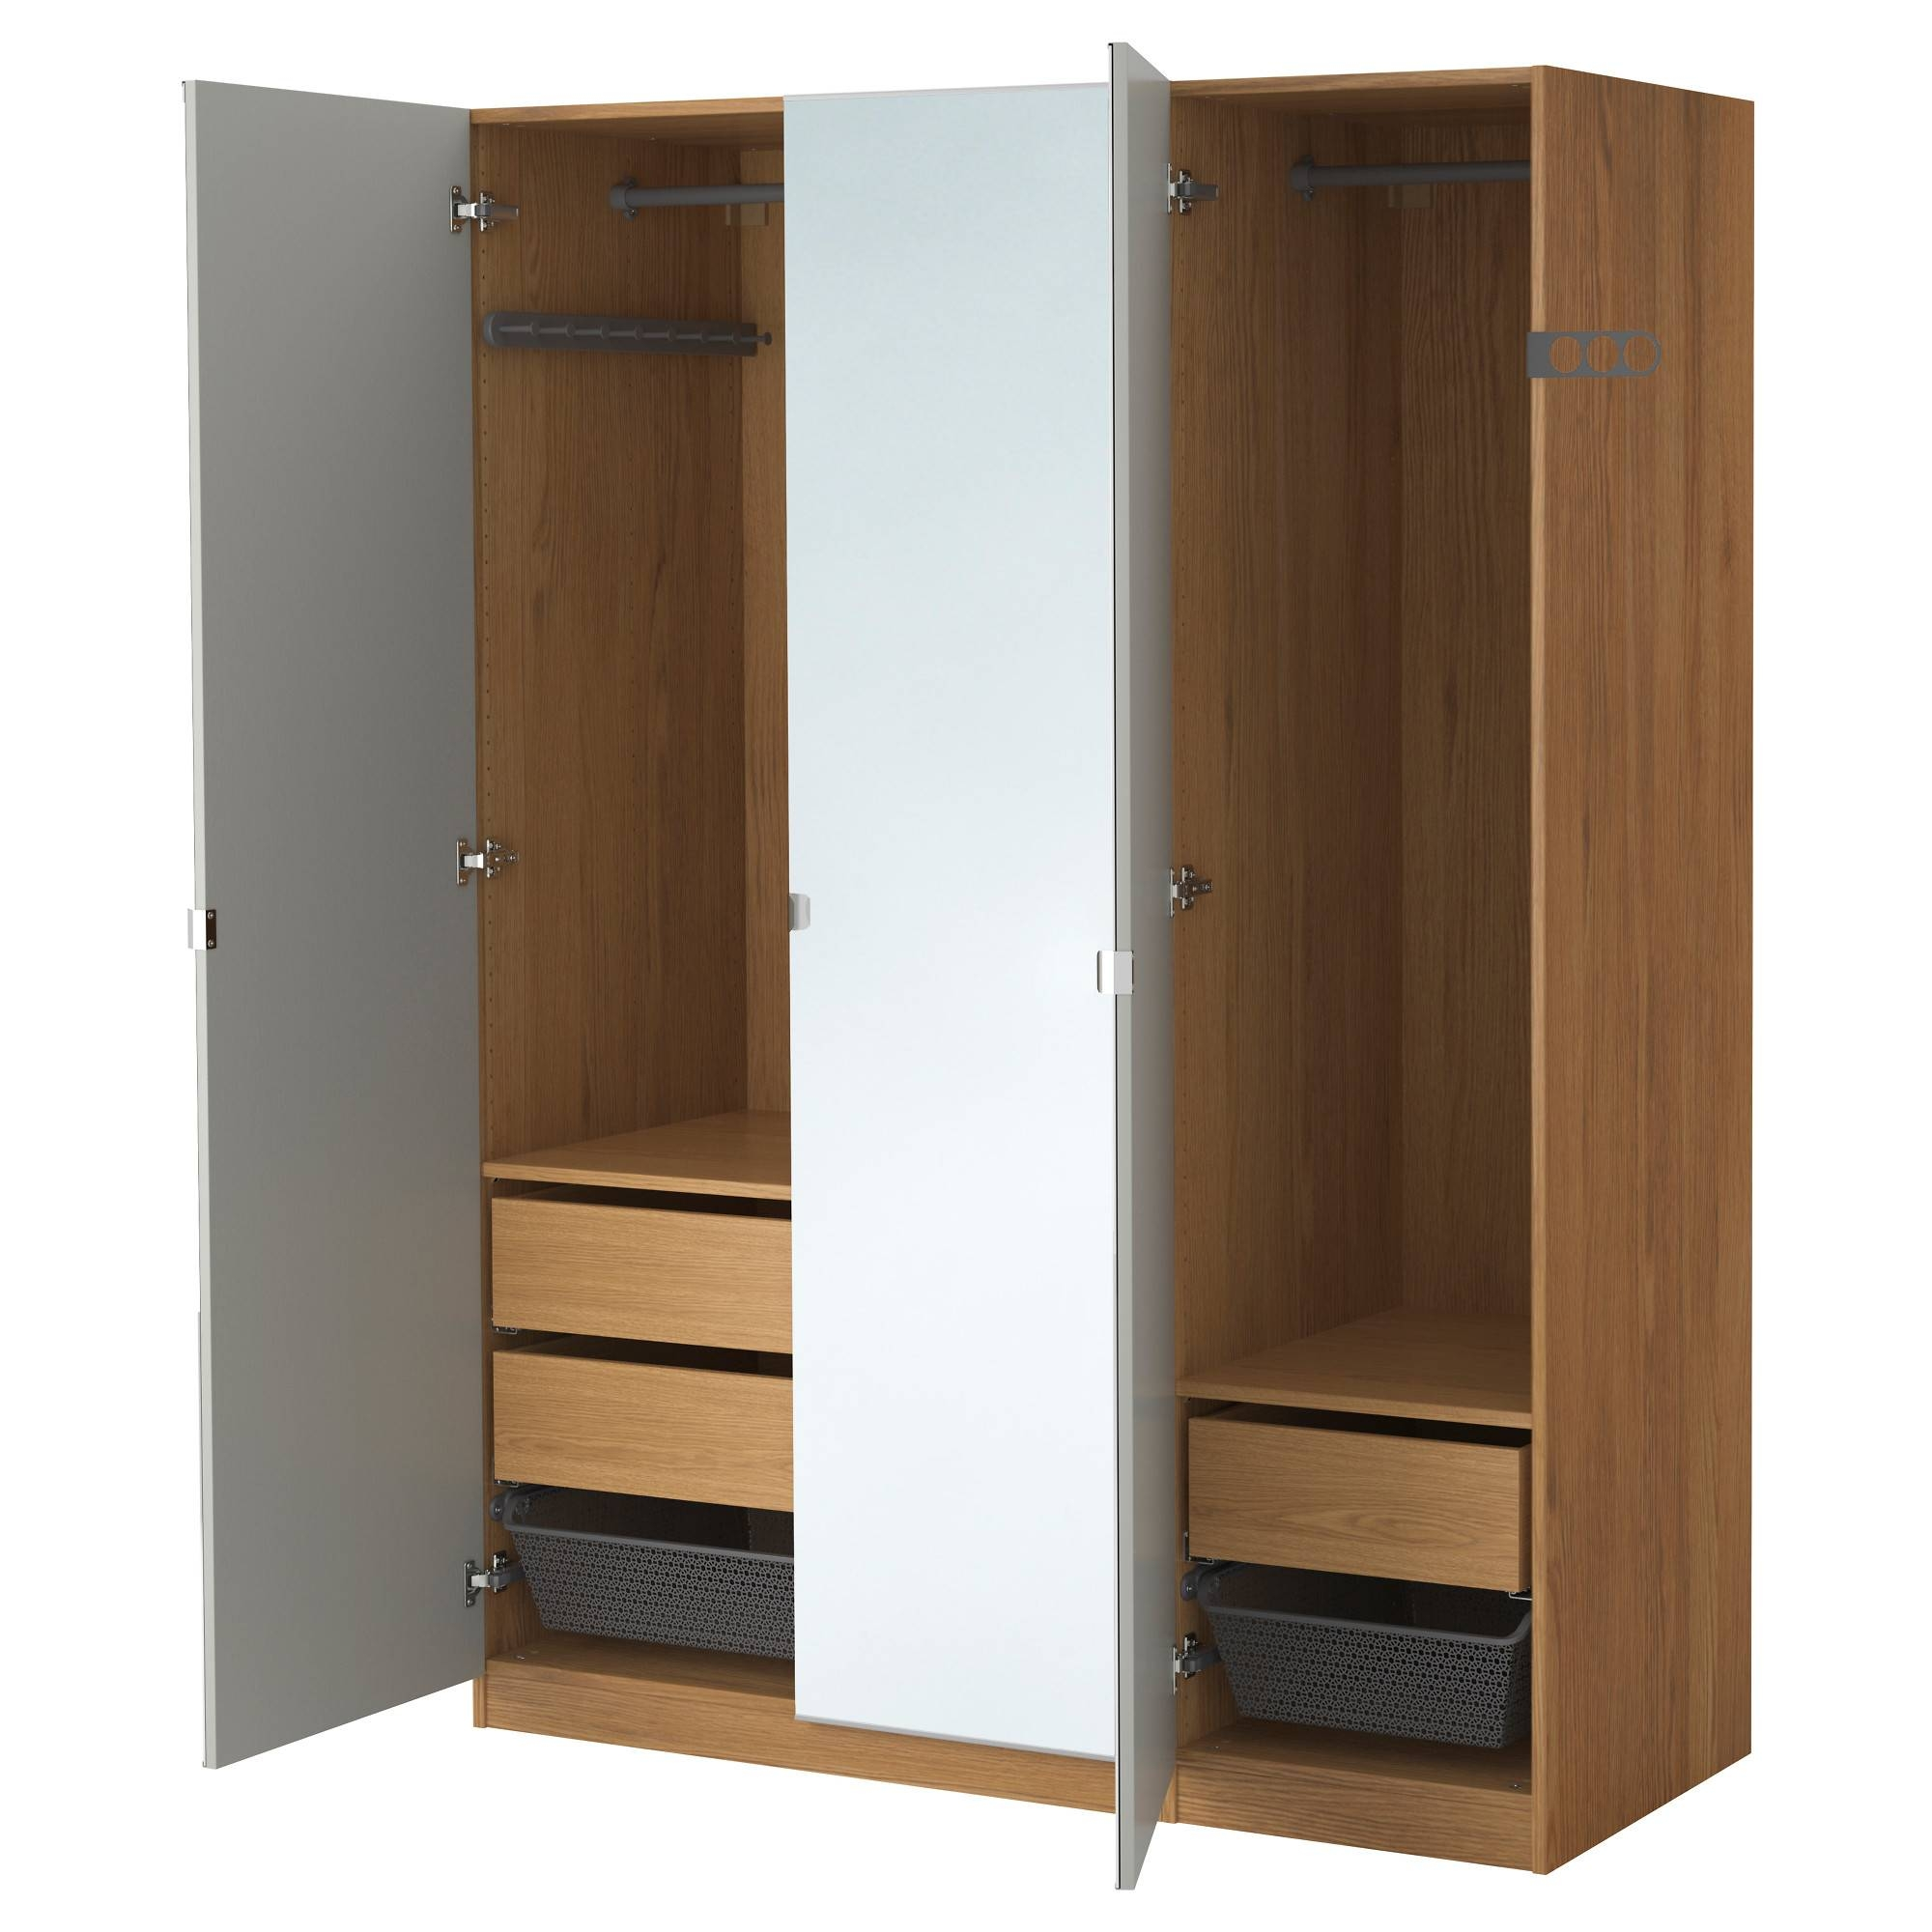 Wardrobes | Ikea In Double Mirrored Wardrobes (View 14 of 15)